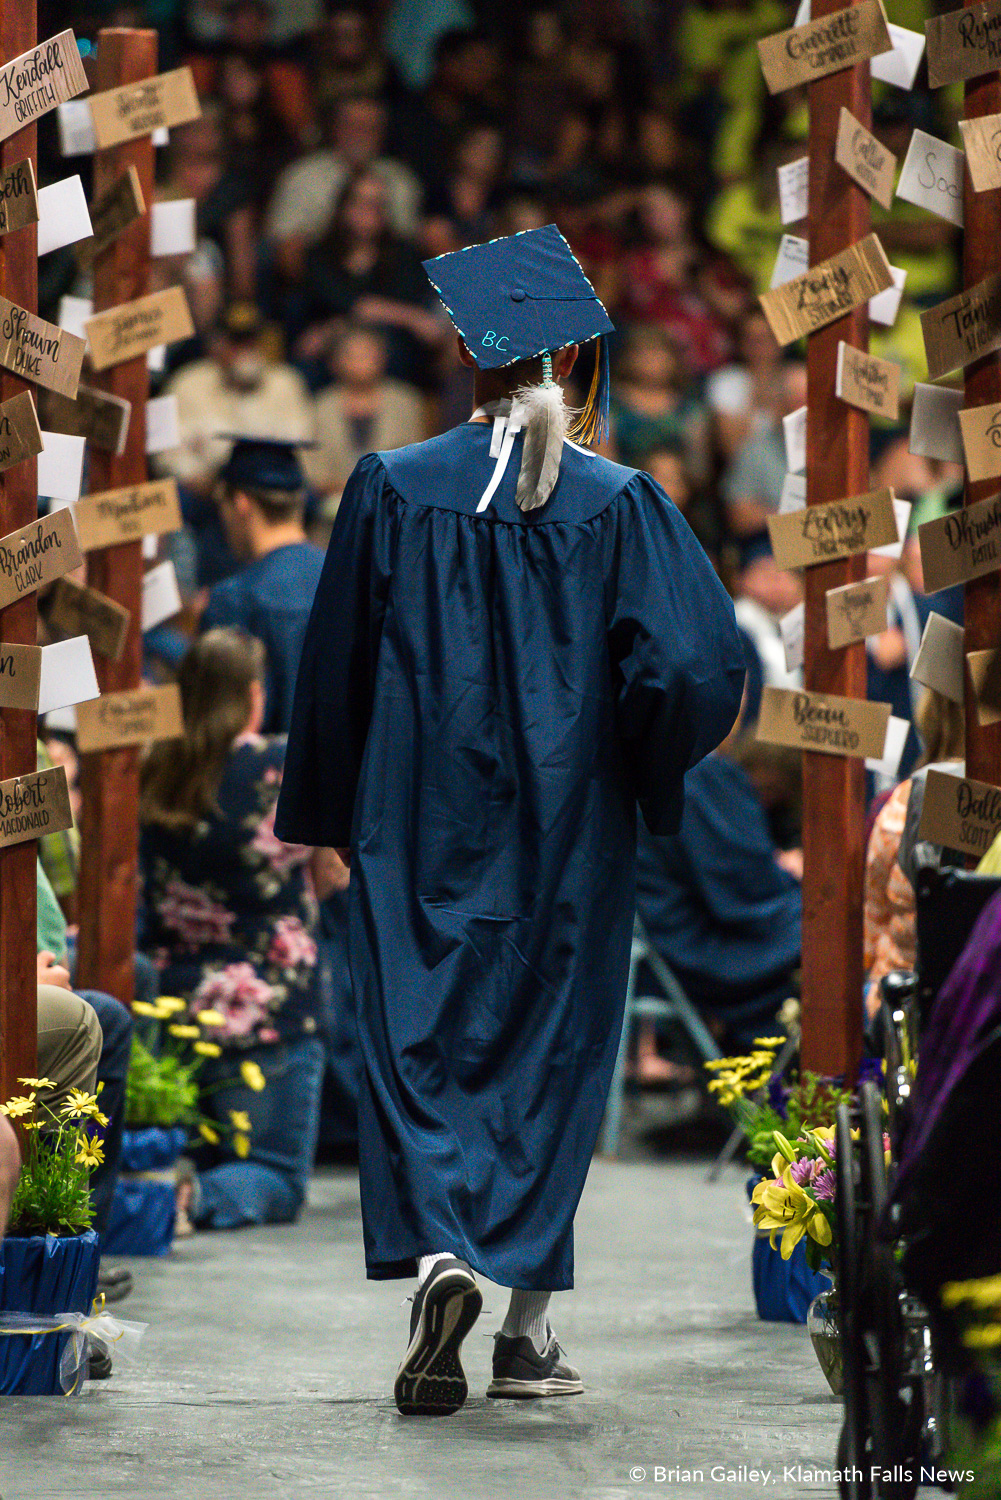 A graduate walks back to their seat after recieving a diploma at the Henley HS Graduation Ceremony. June 10, 2018 (Brian Gailey).